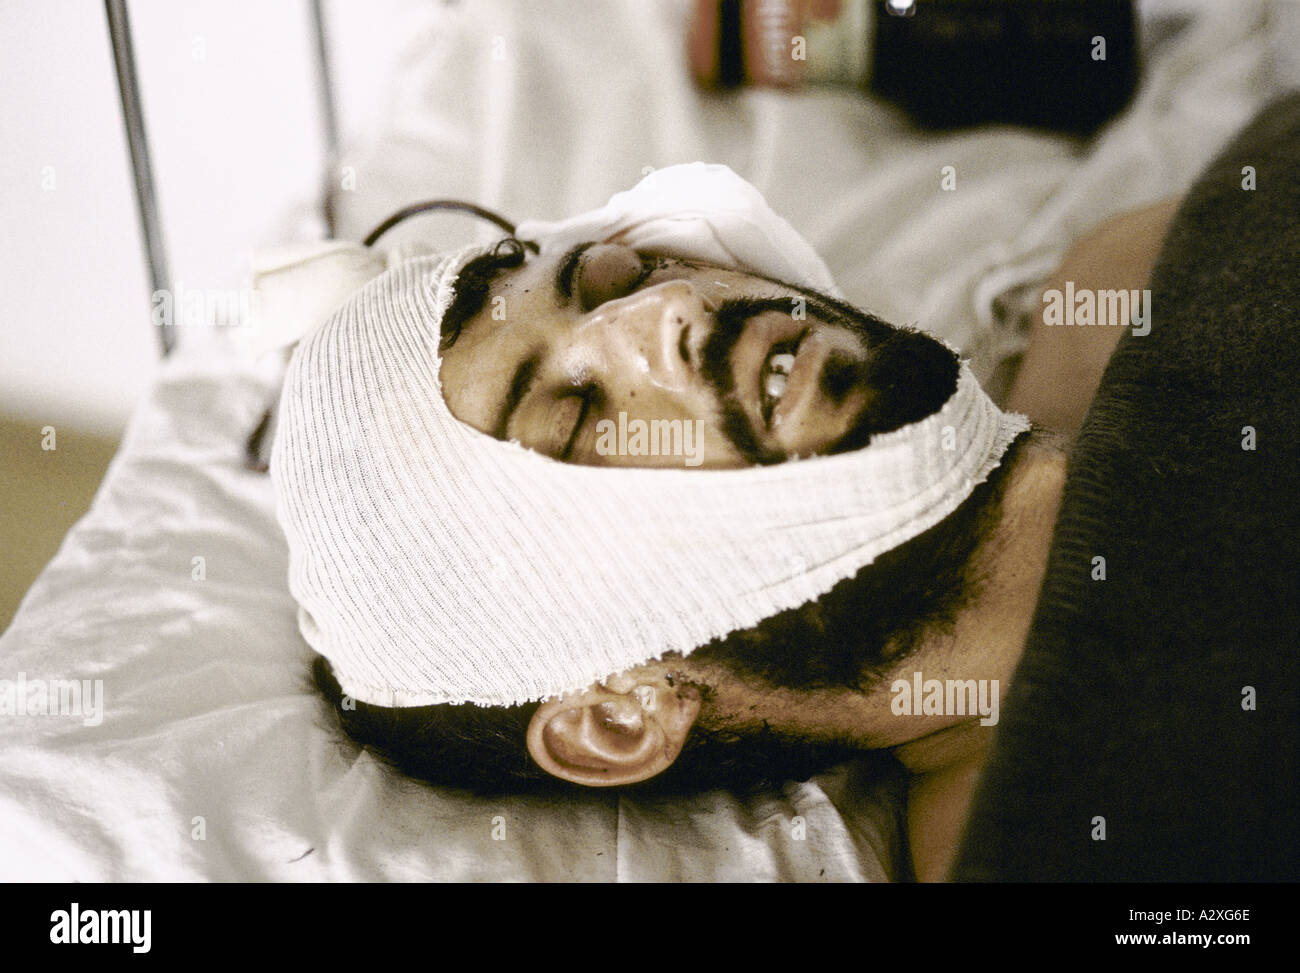 Socolitz, Bosnia, Sept 1992: wounded Bosnian Serb soldiers under treatment in Socolitz hospital. Stock Photo